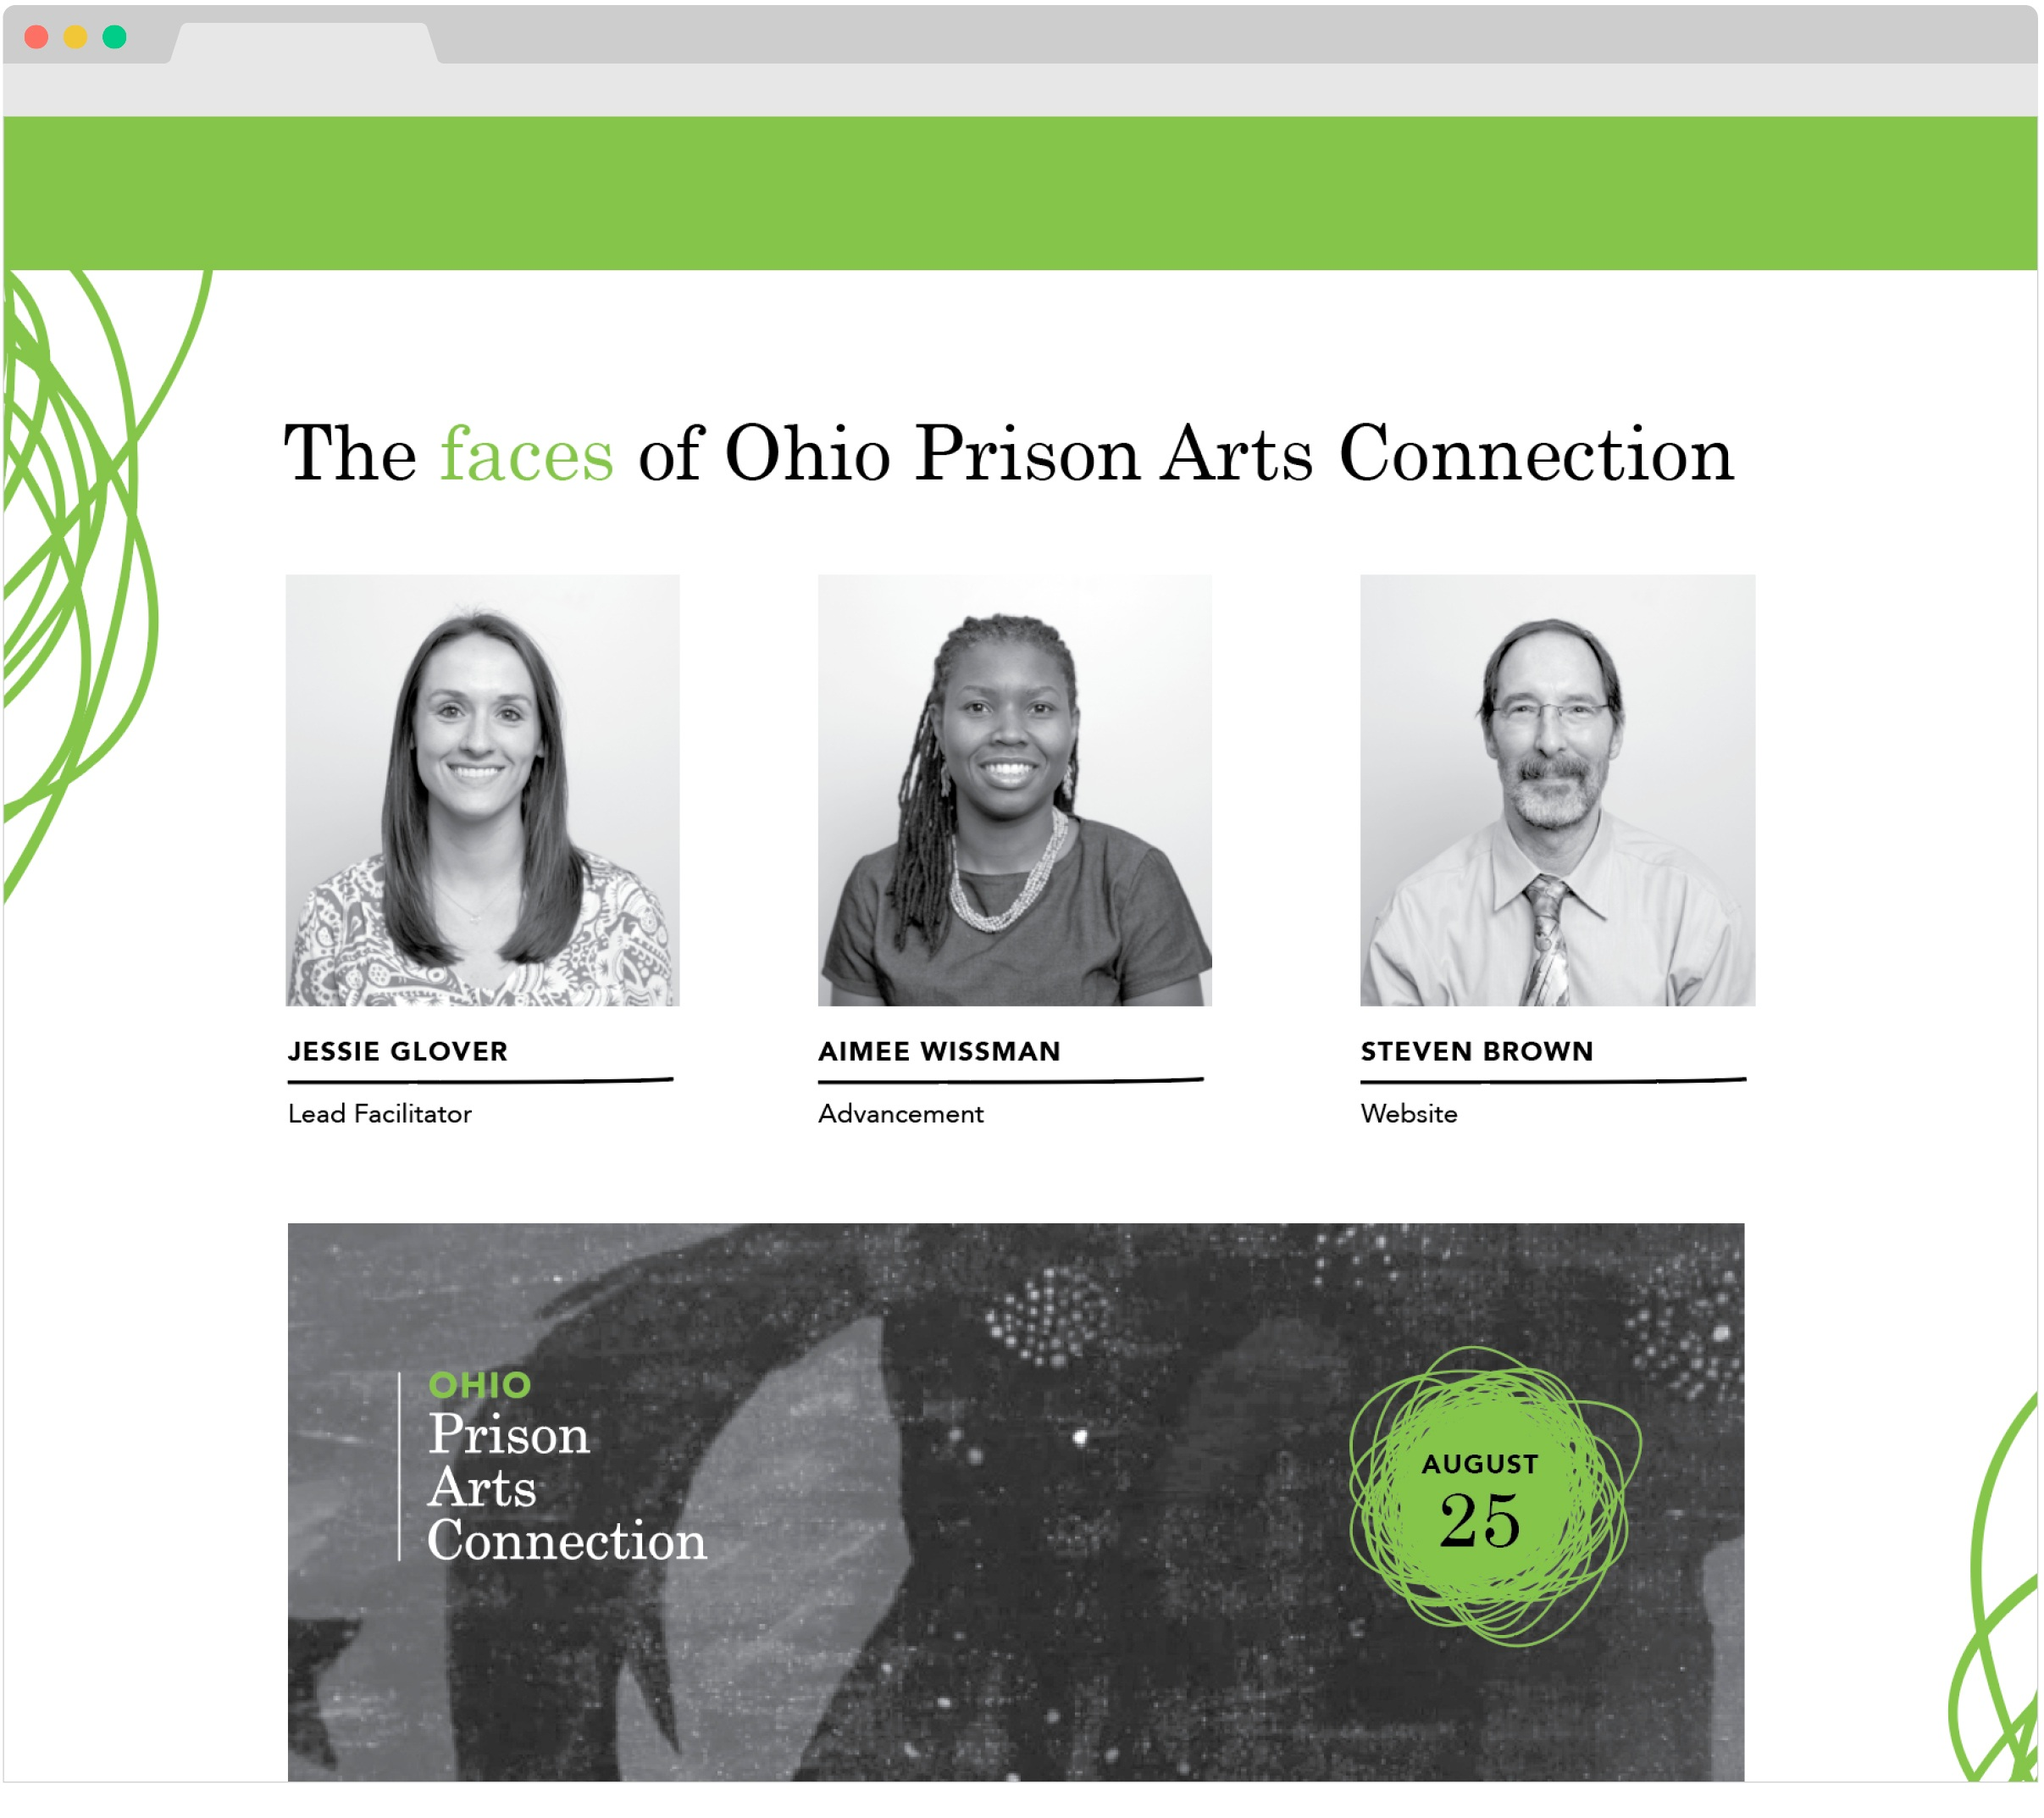 webbrowser2_ohio-prison-arts-connection.jpg